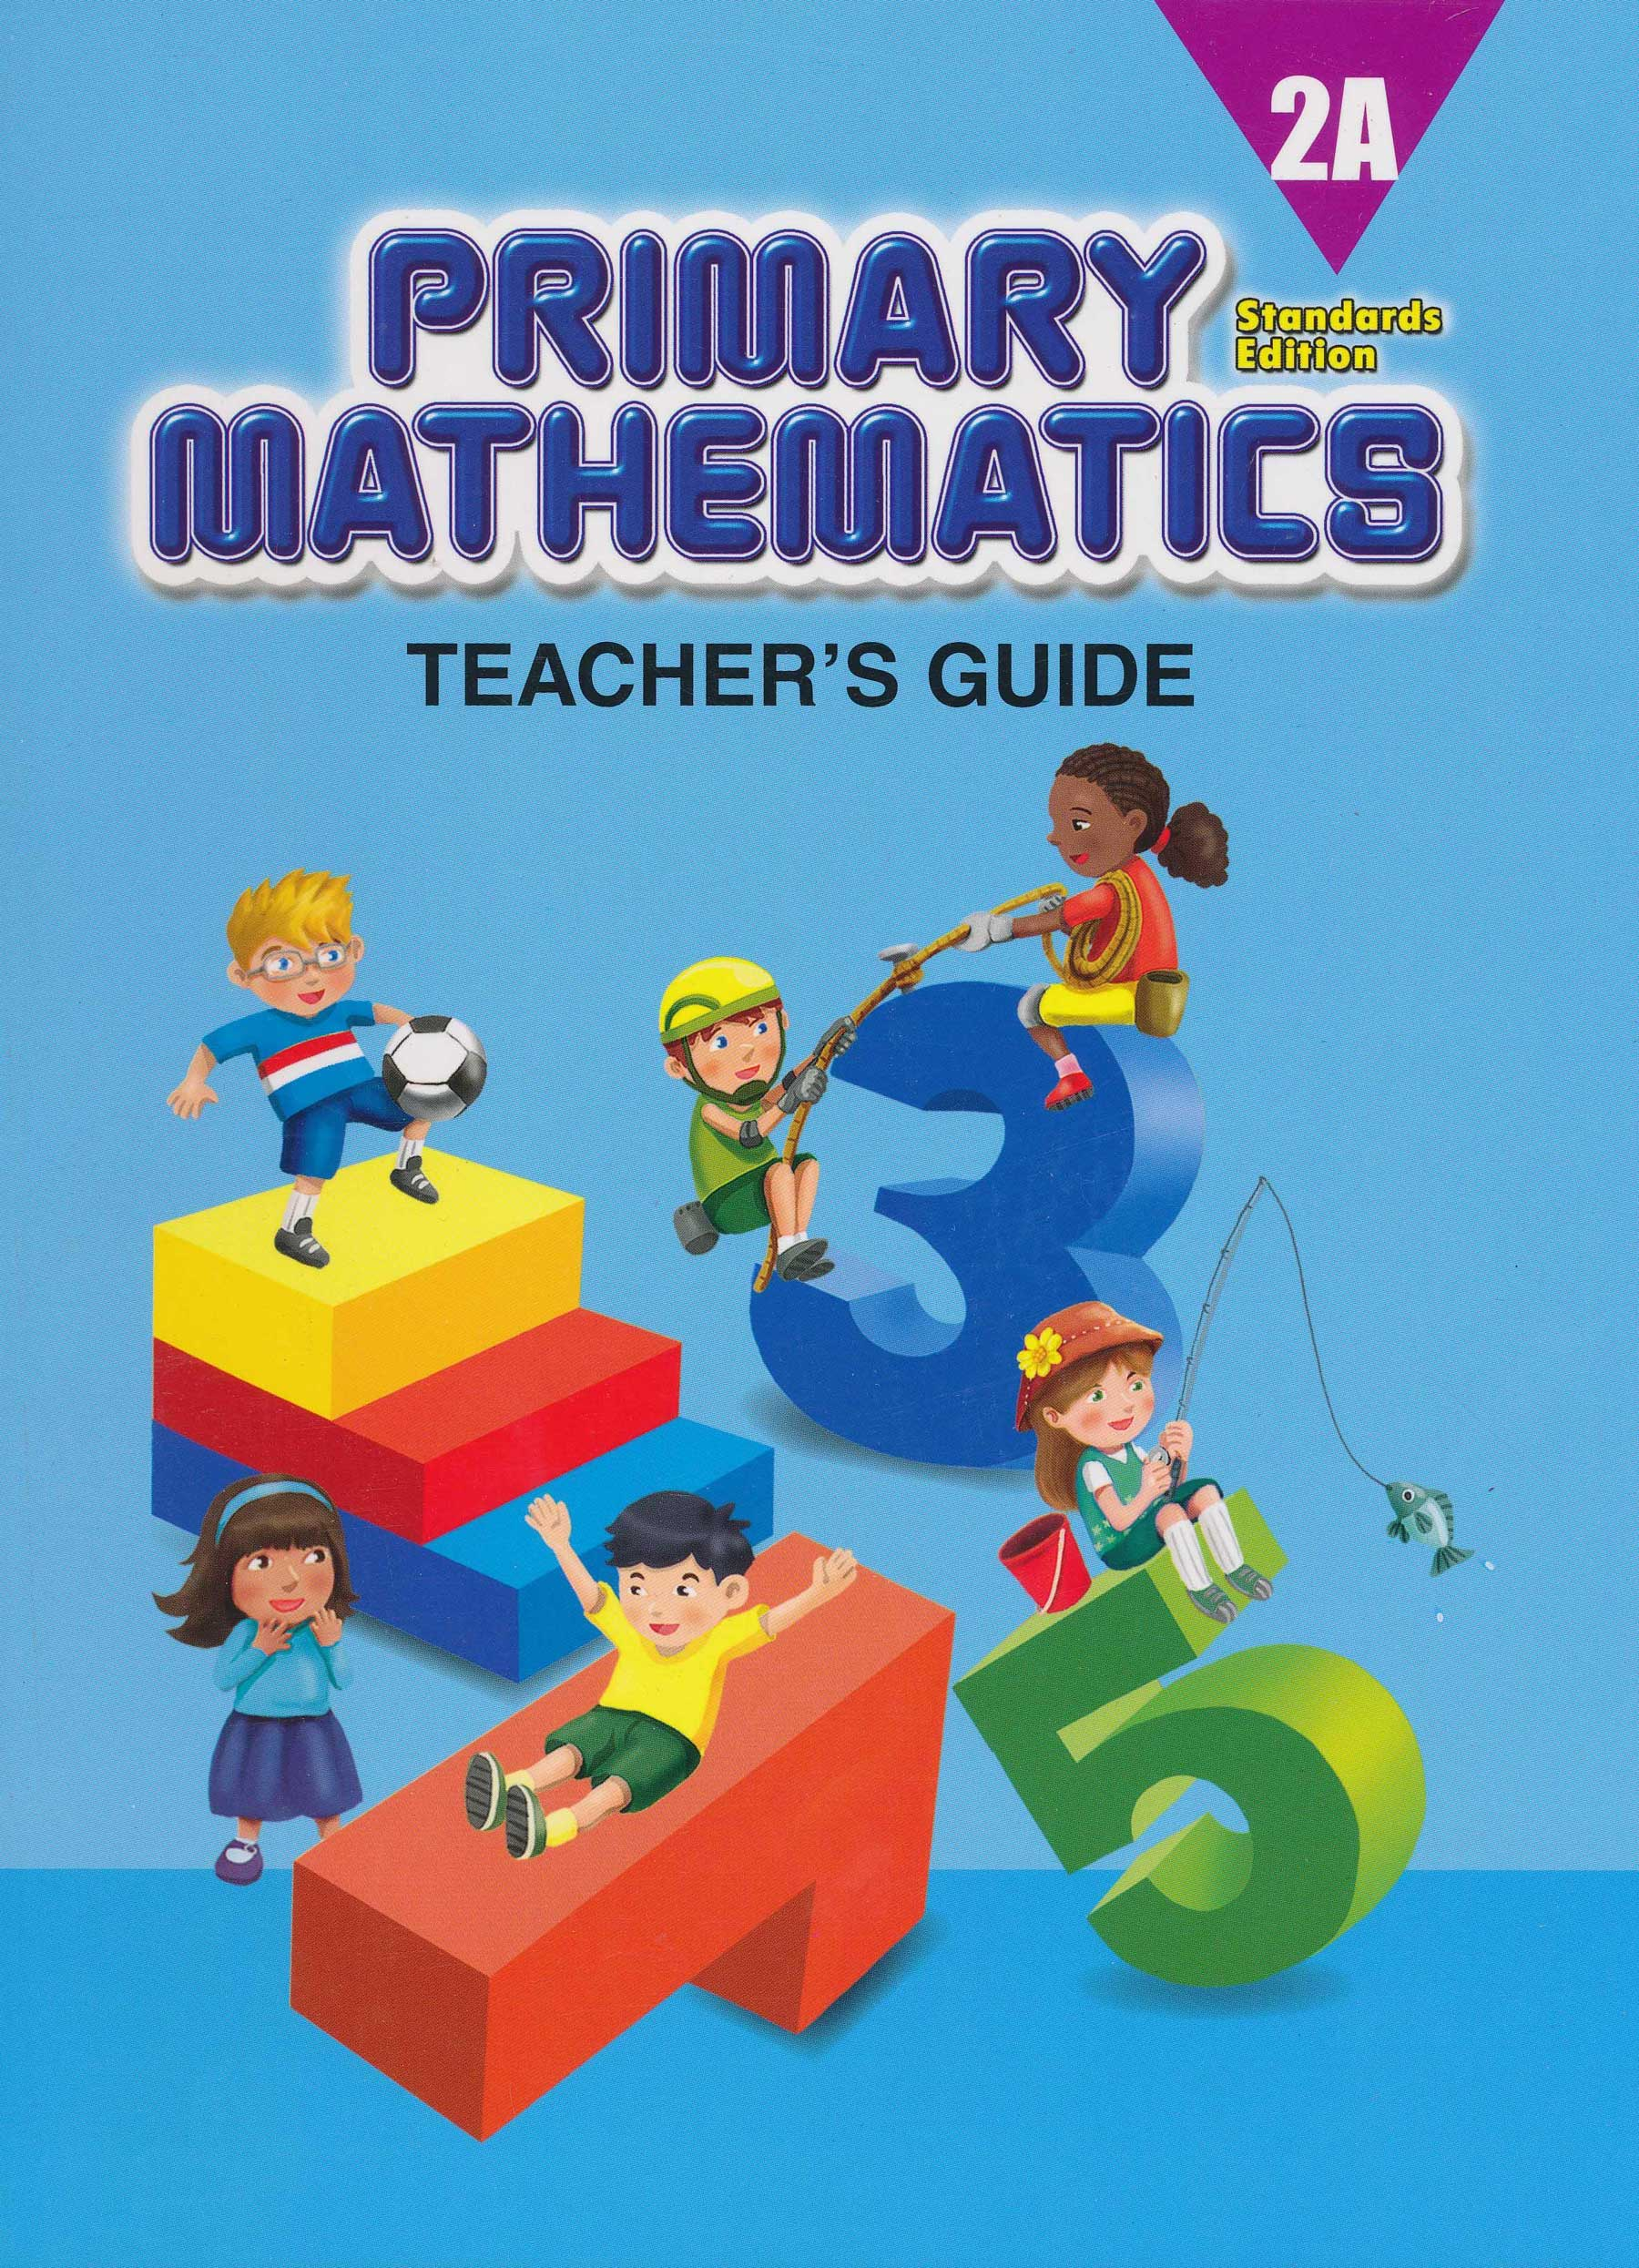 Primary Mathematics Teacher's Guide 2A (Standards Edition)